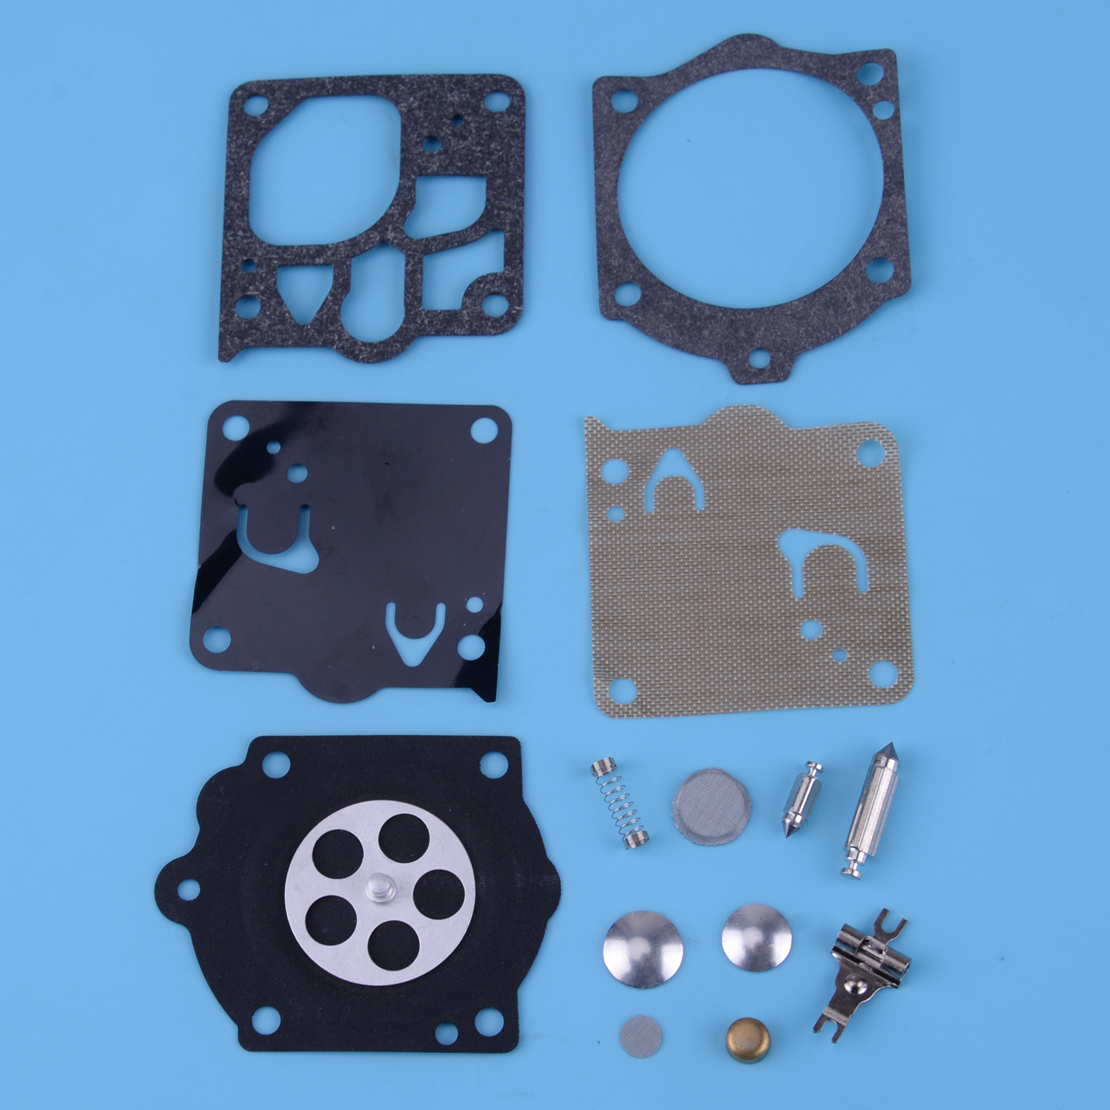 Carburetor Carb Rebuild Repair Kit Gasket Diaphragm Fit For Stihl 066 050 051 056 064 076 MS660